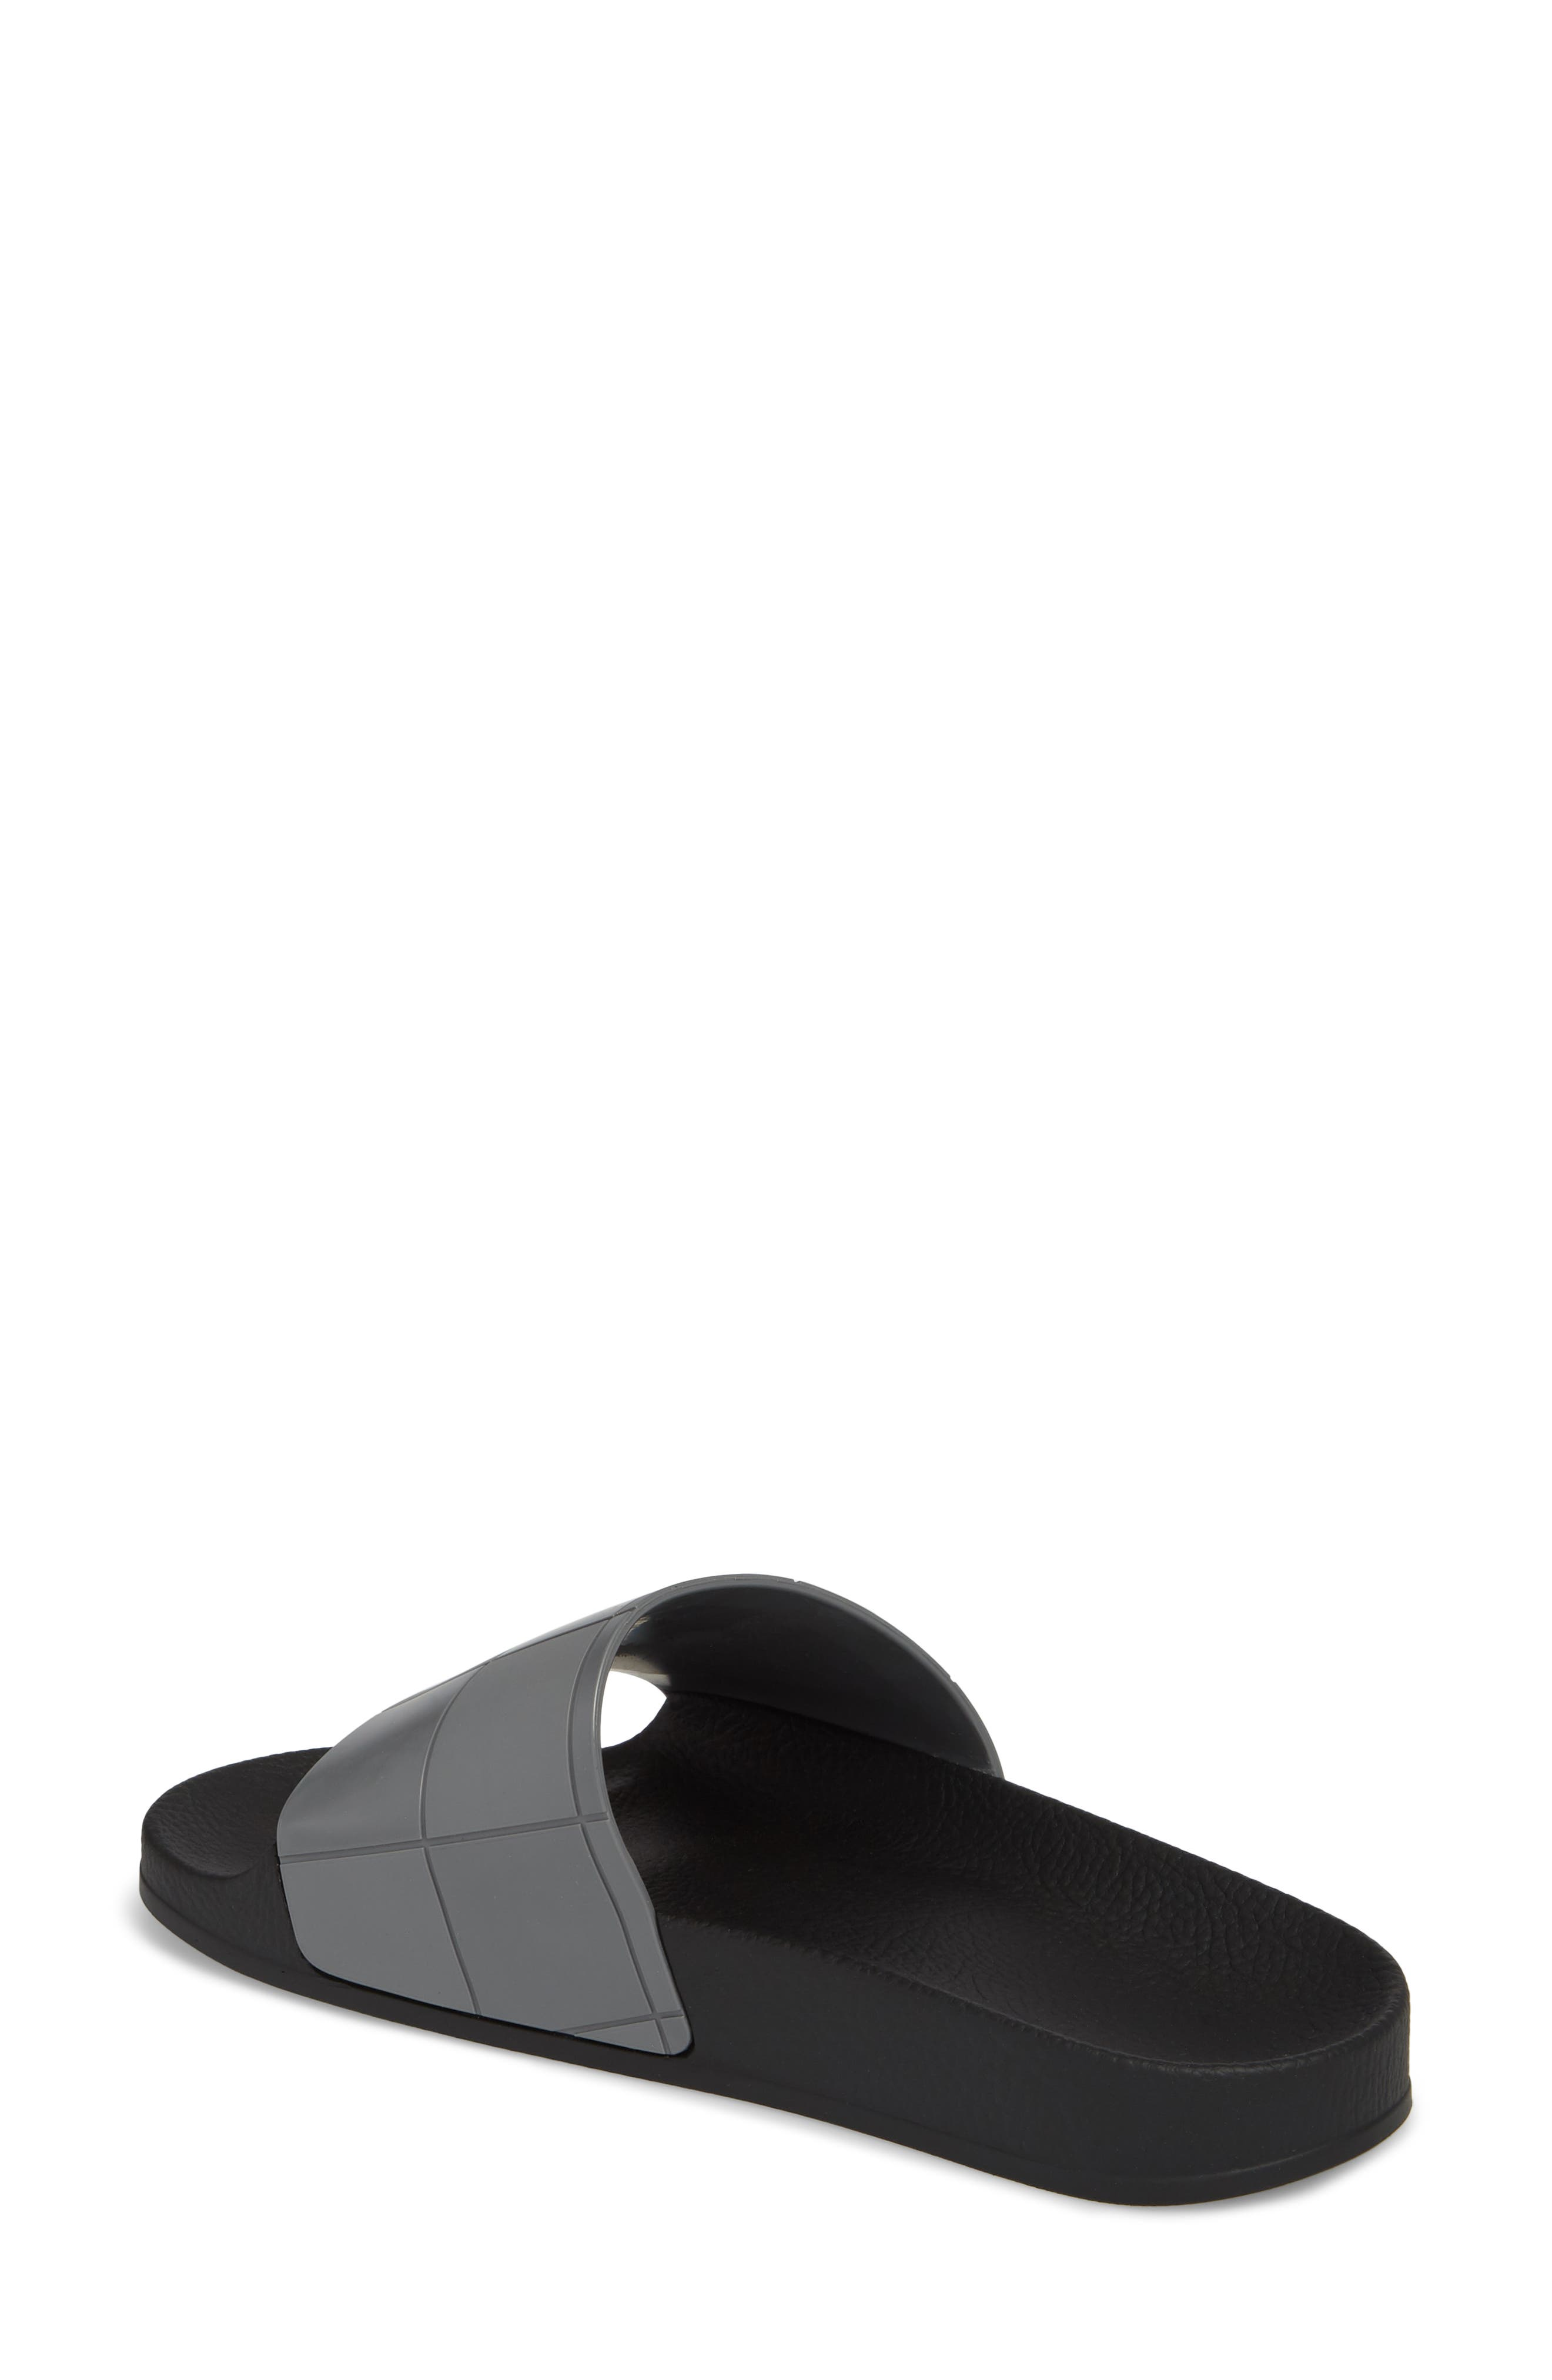 adidas by Raf Simons Adilette Slide Sandal,                             Alternate thumbnail 2, color,                             001